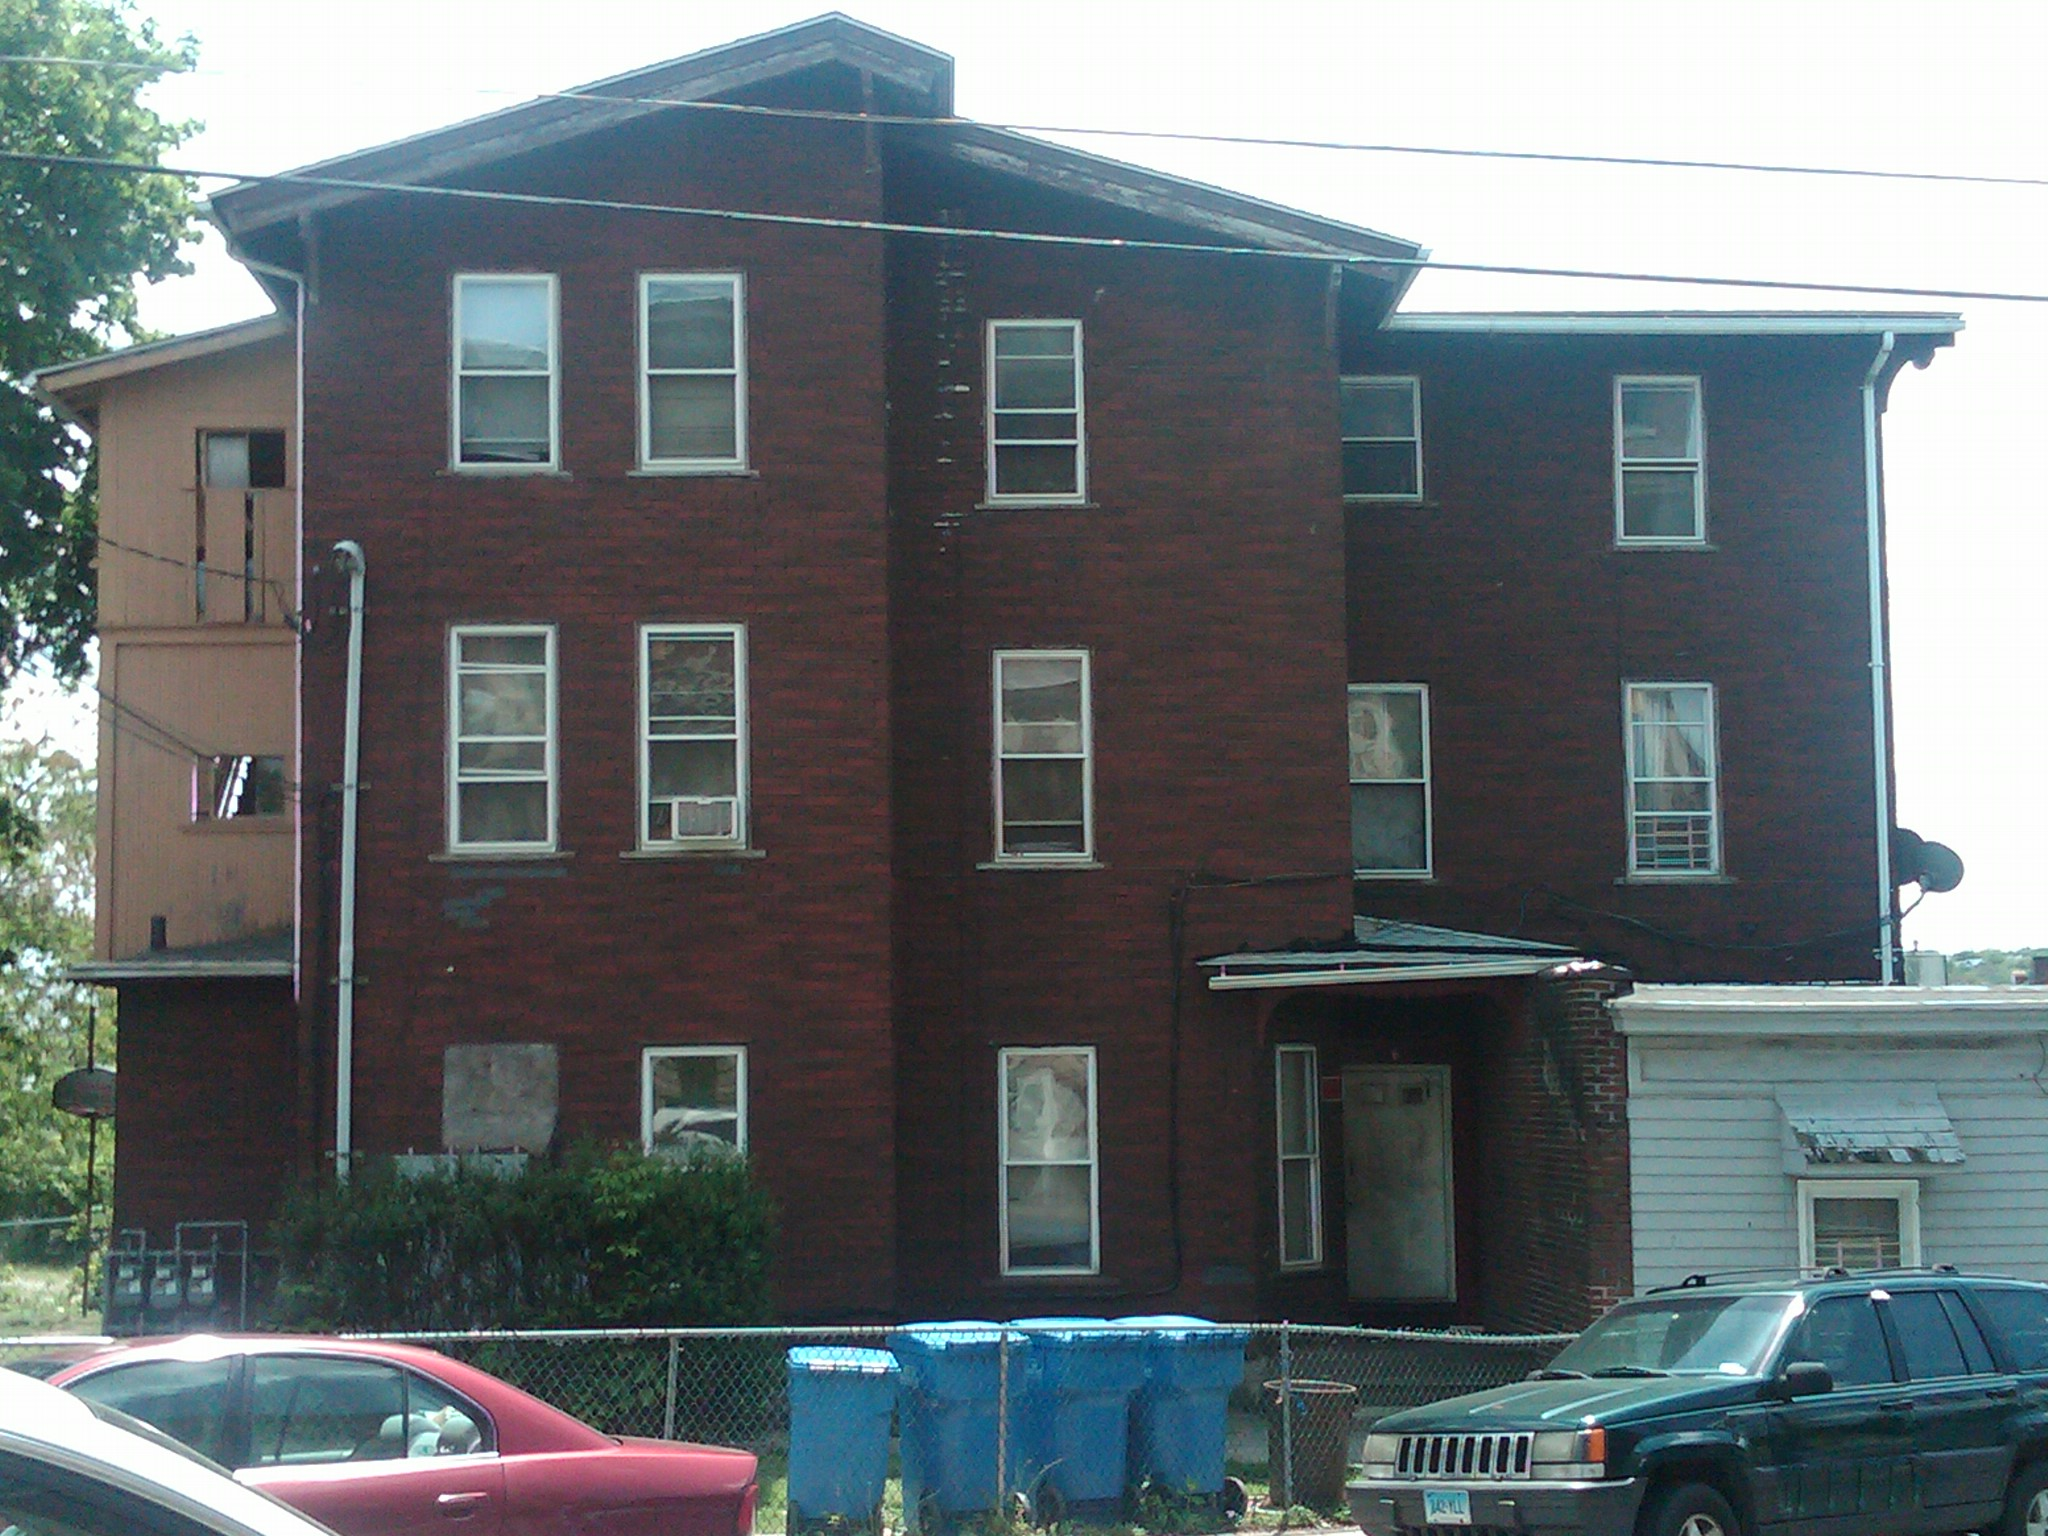 One Bedroom Apartment In Waterbury For Rent   6 Pine Street. Waterbury Home Rentals   Call 203 510 6177 or E mail